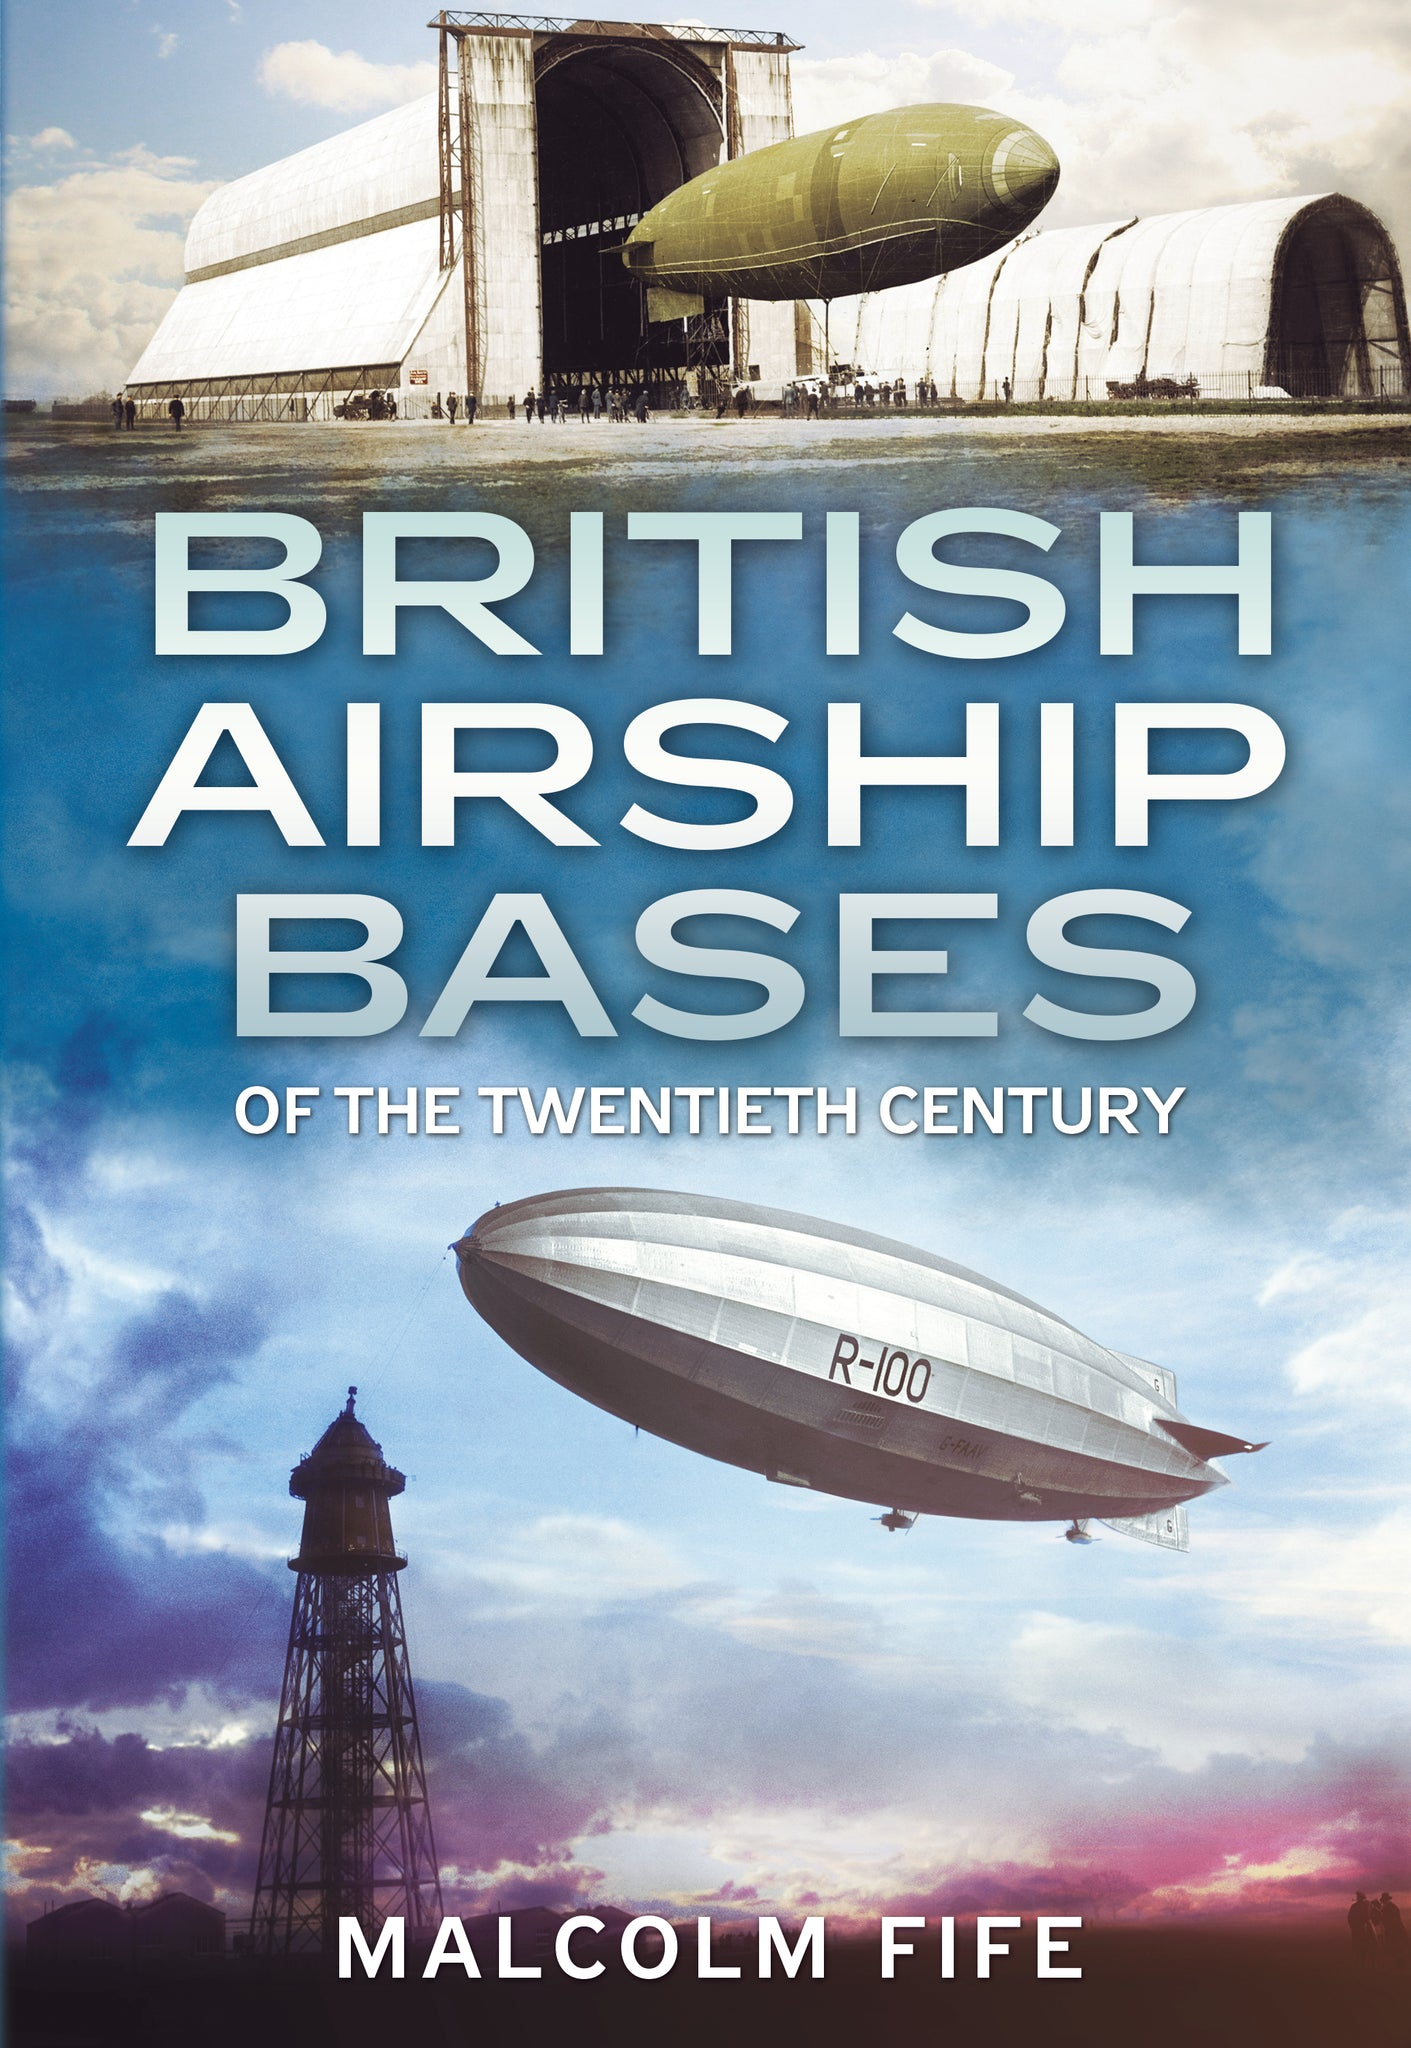 British Airship Bases of the Twentieth Century - available now from Fonthill Media